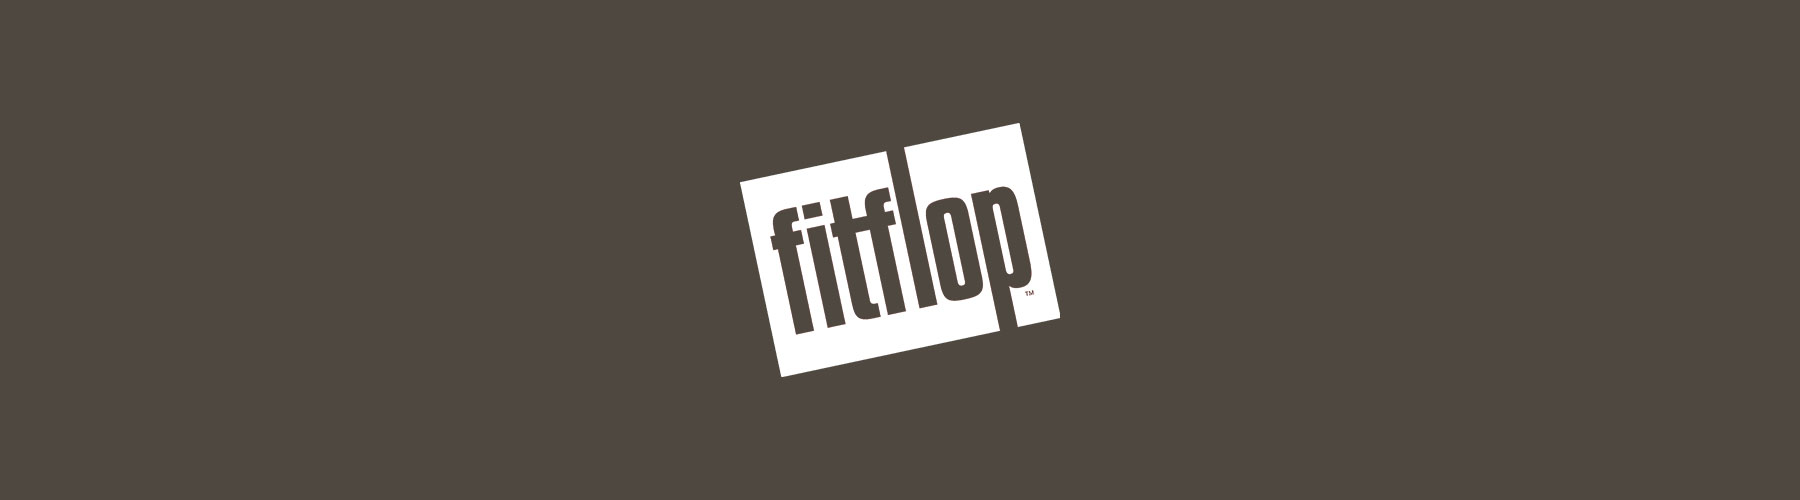 Womens Brands Fitflop